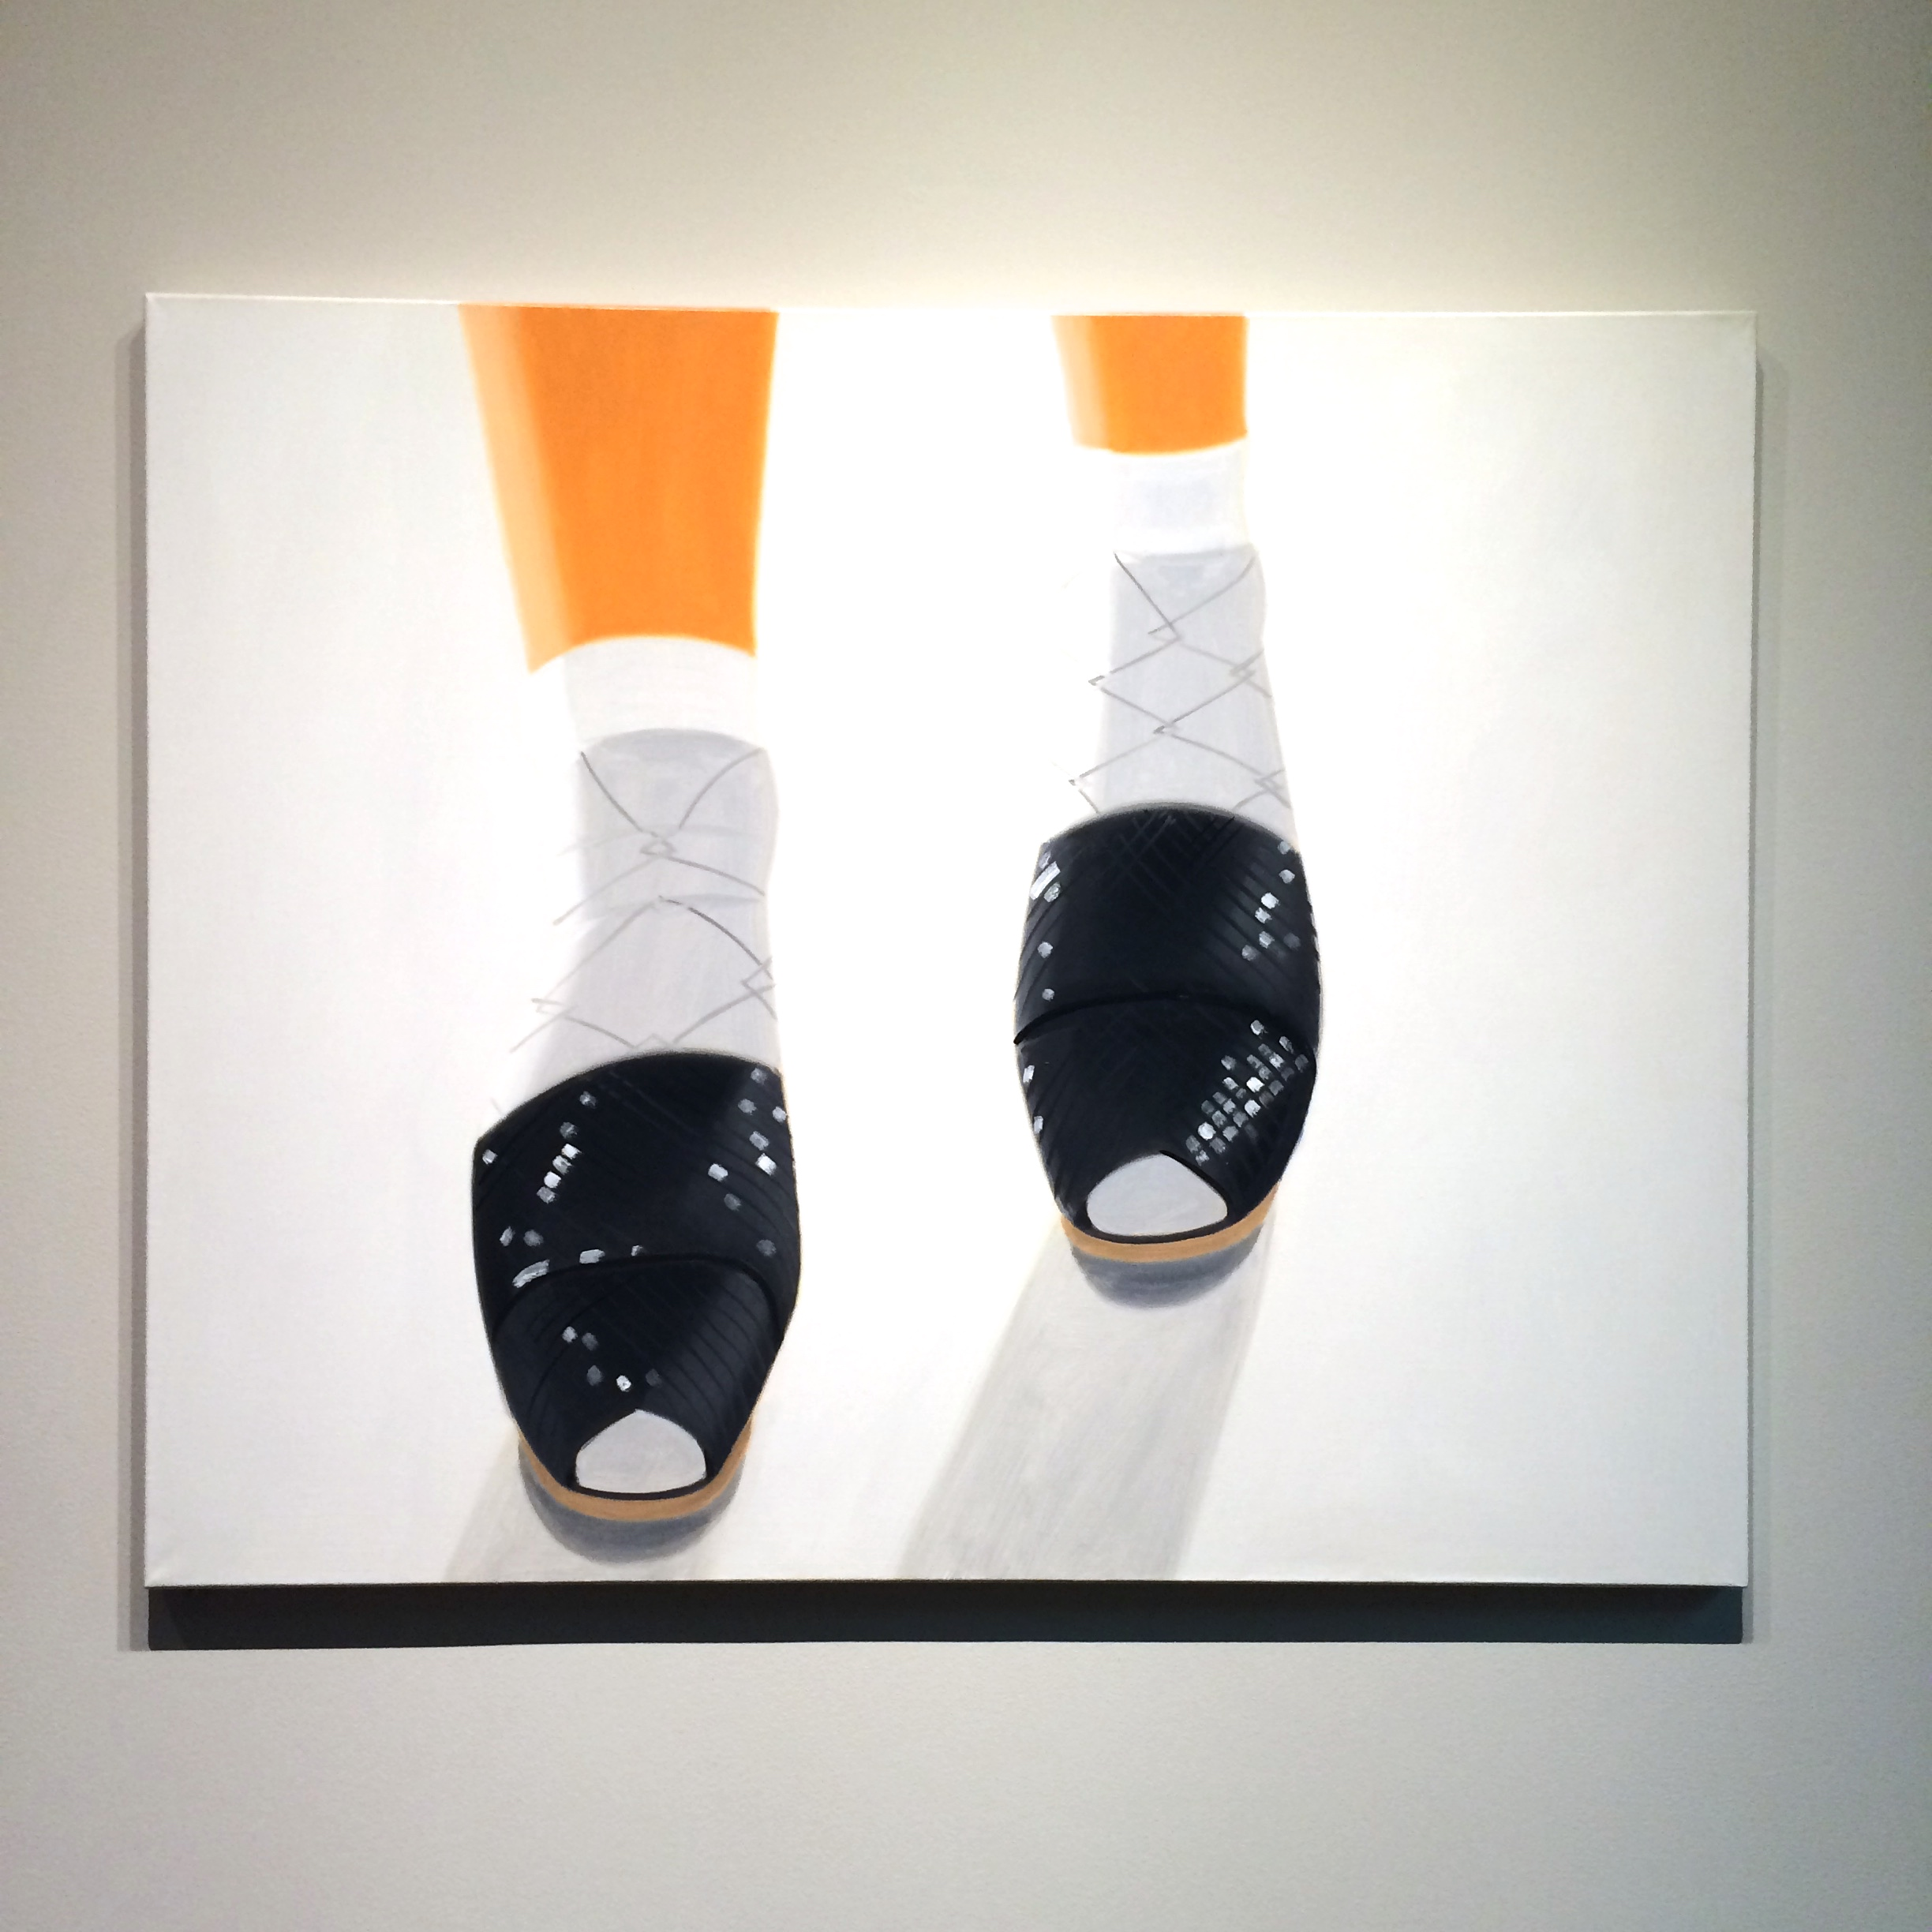 Alex Katz,  Ada's Black Sandals  (1987). 48 × 60 inches. Colby College Museum of Art, Gift of the artist.